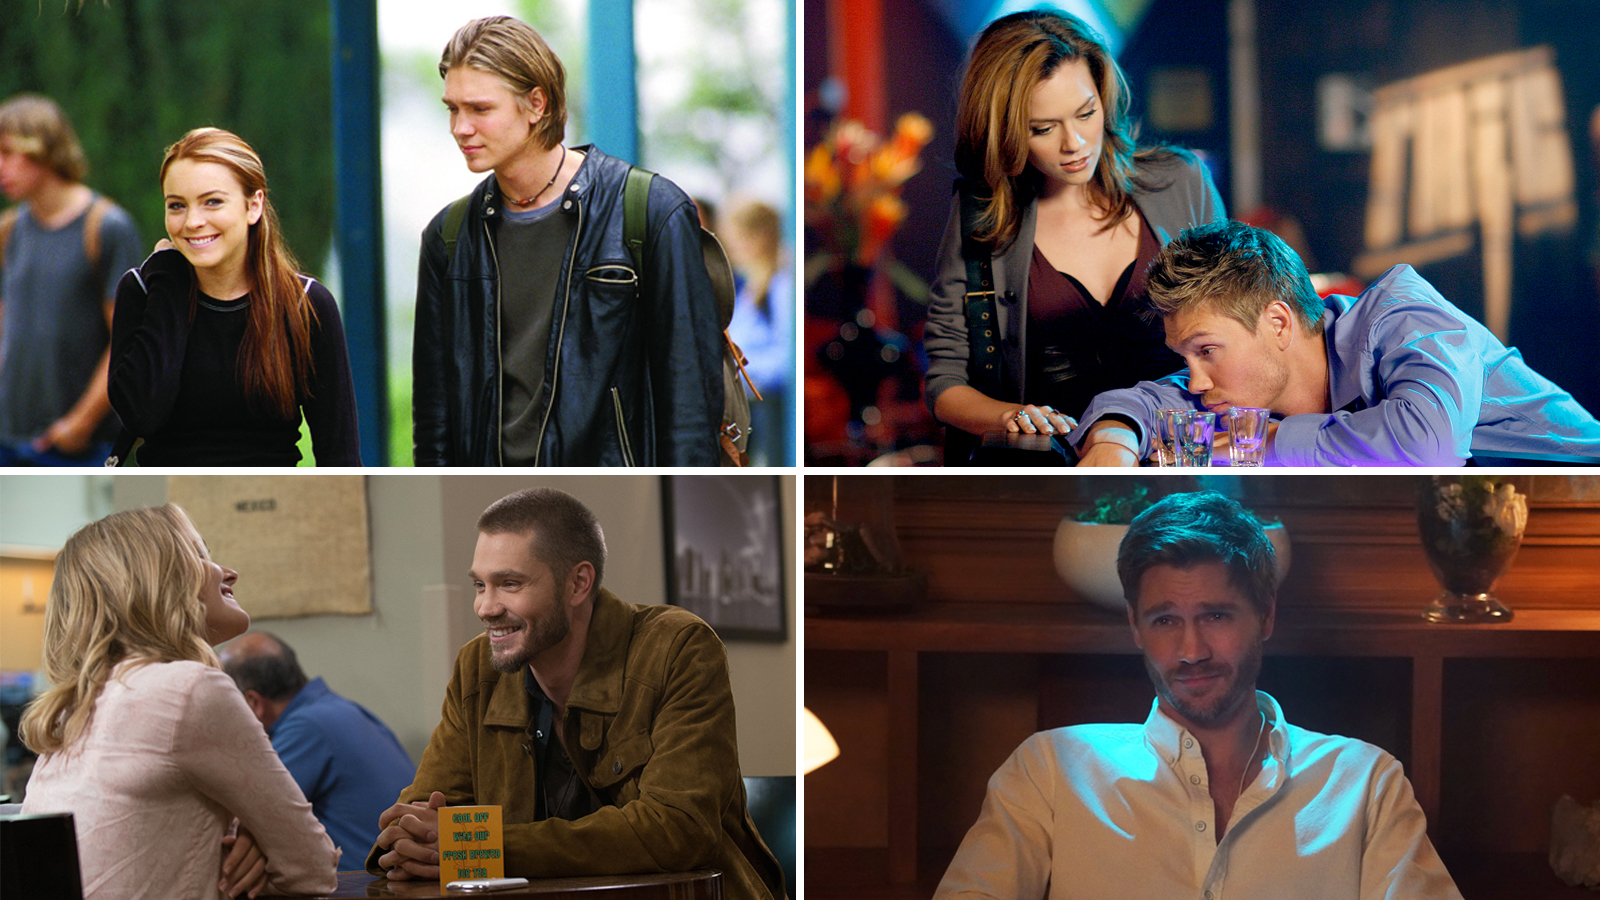 From 'Freaky Friday' to 'Riverdale' — Chad Michael Murray Is Still Our Prince Charming After All These Years